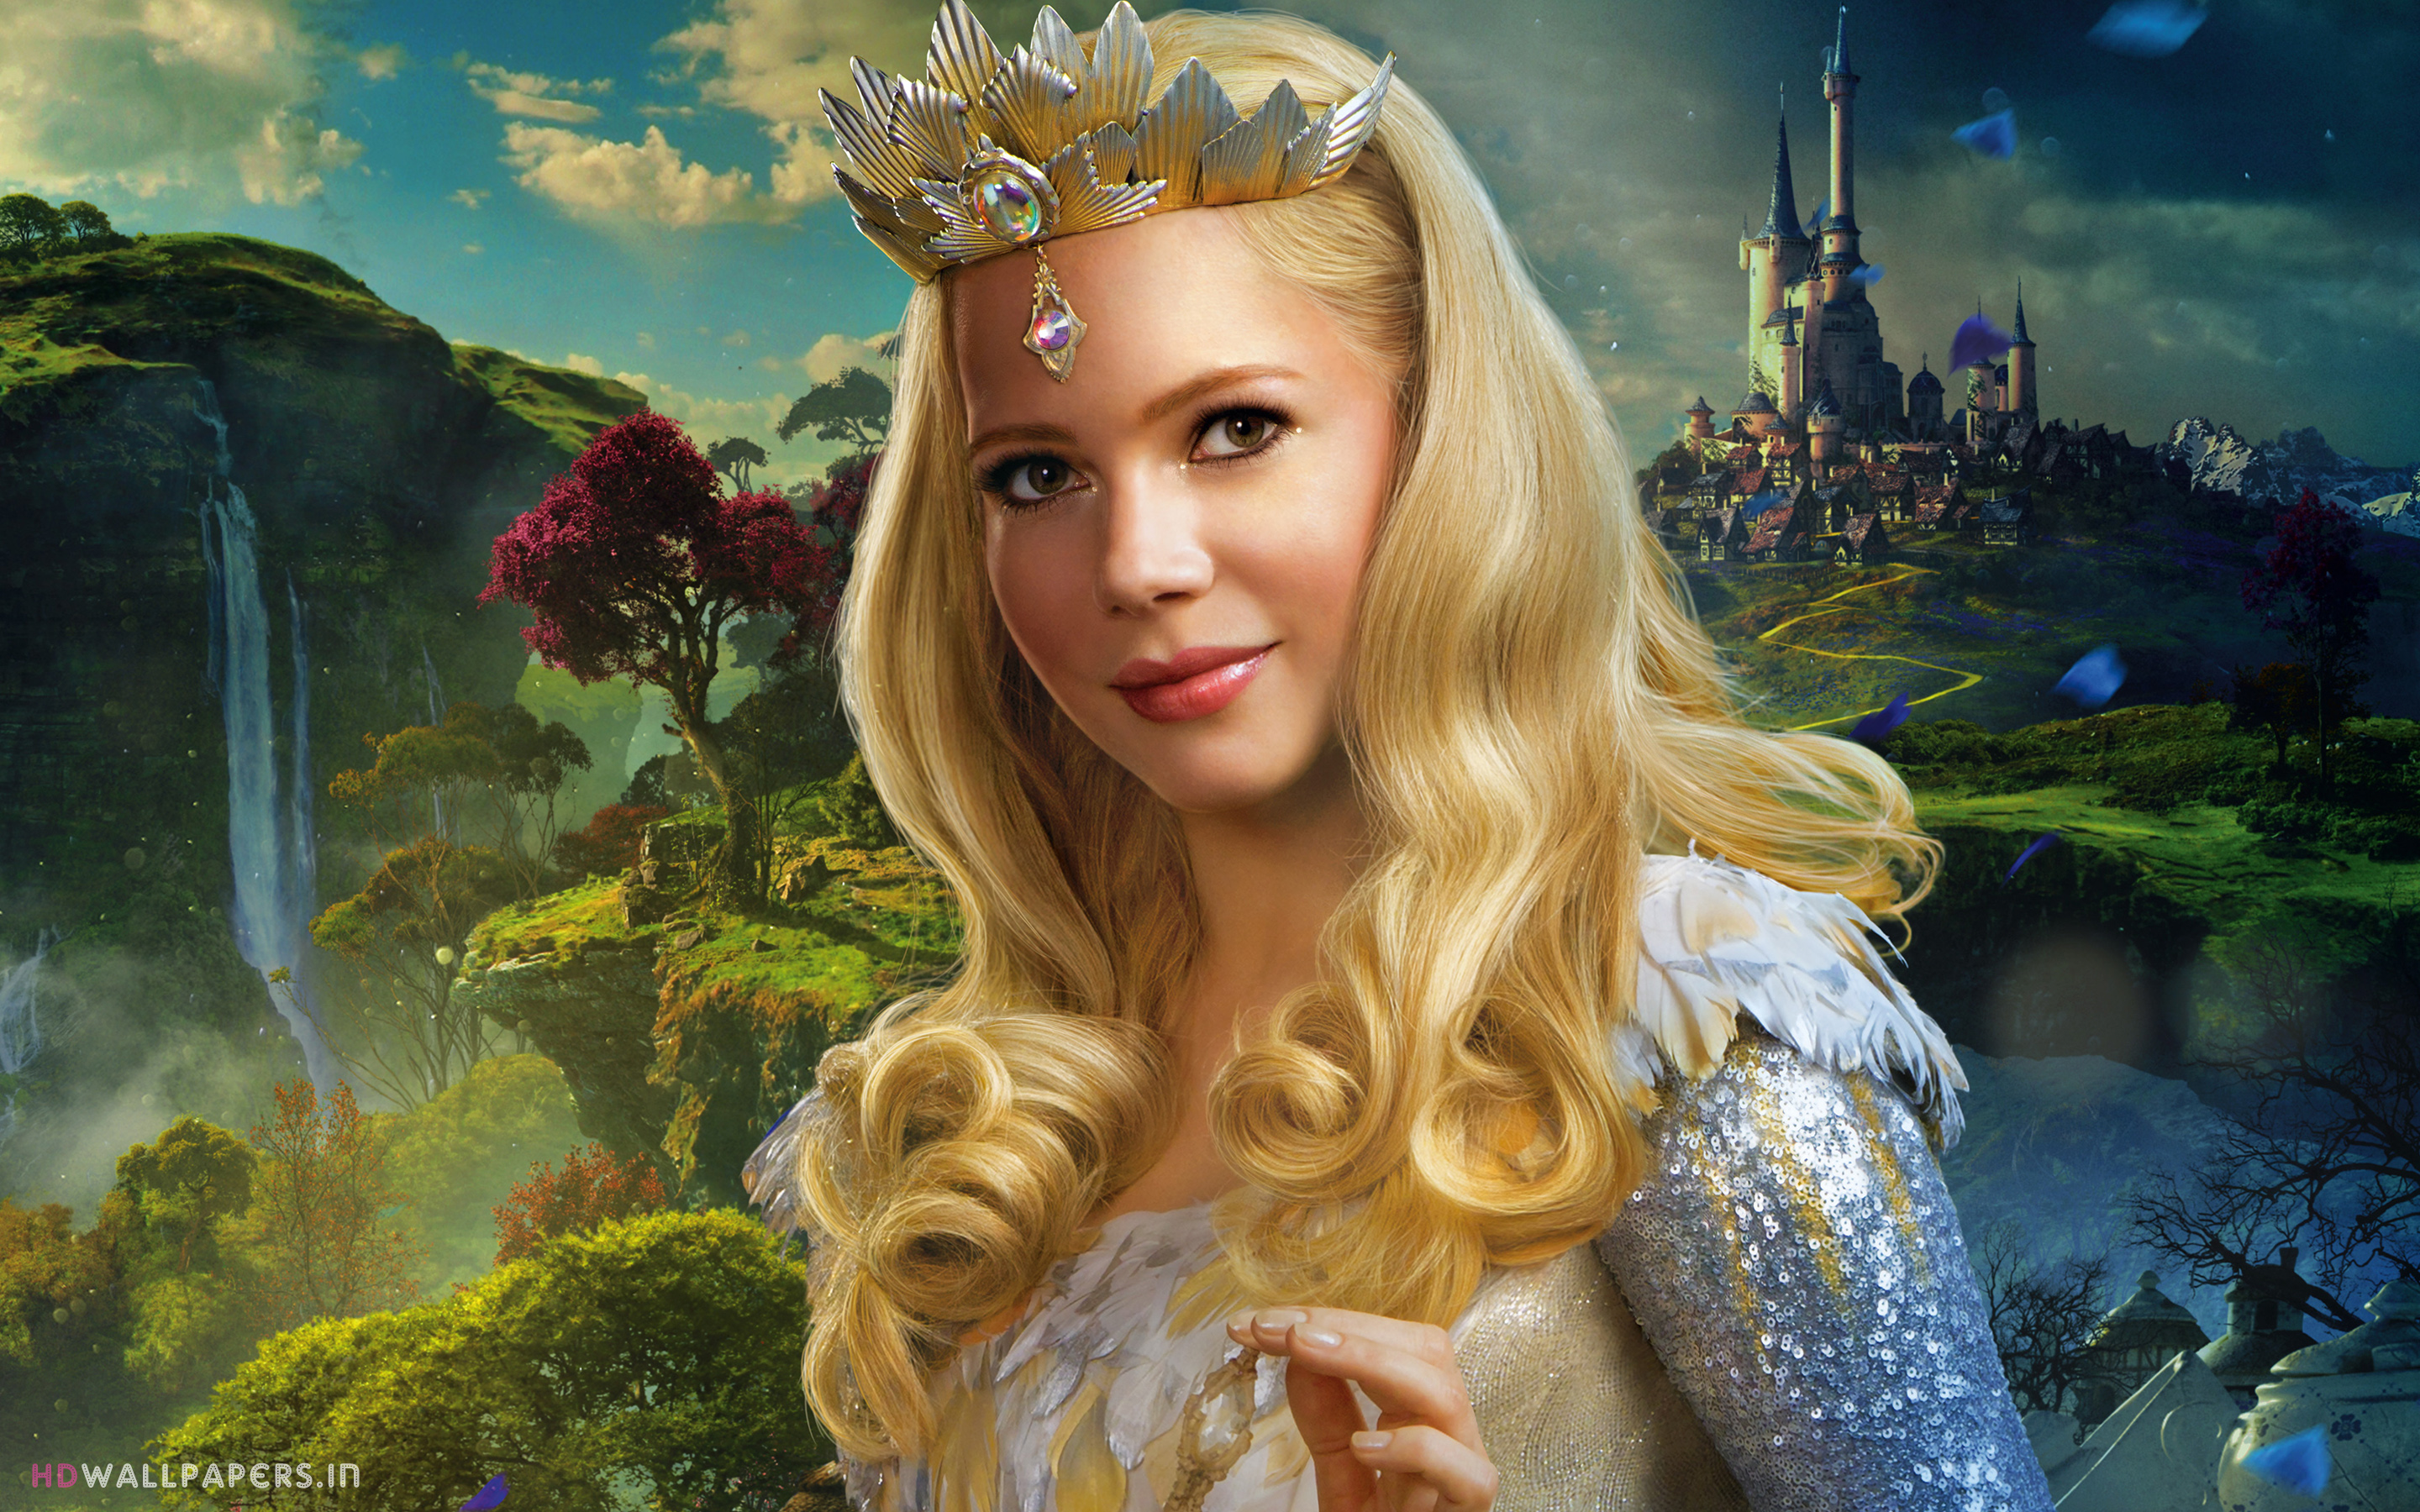 Michelle Williams oz